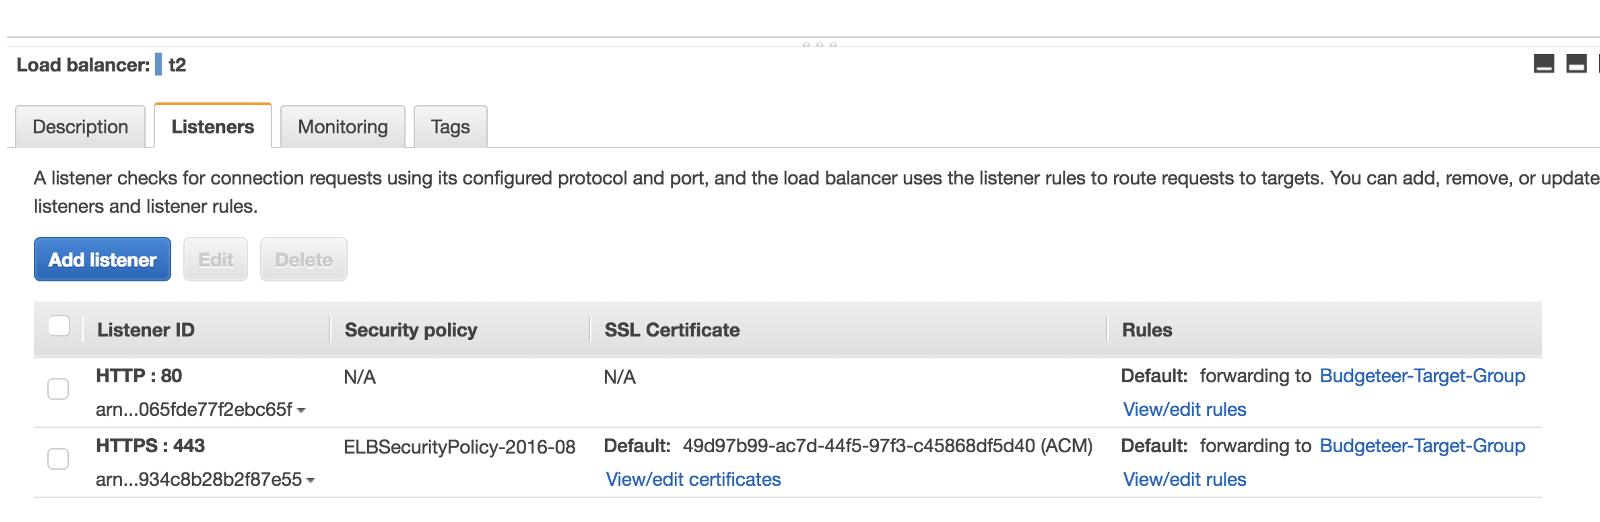 Getting a Free SSL Certificate on AWS a How-To Guide - By